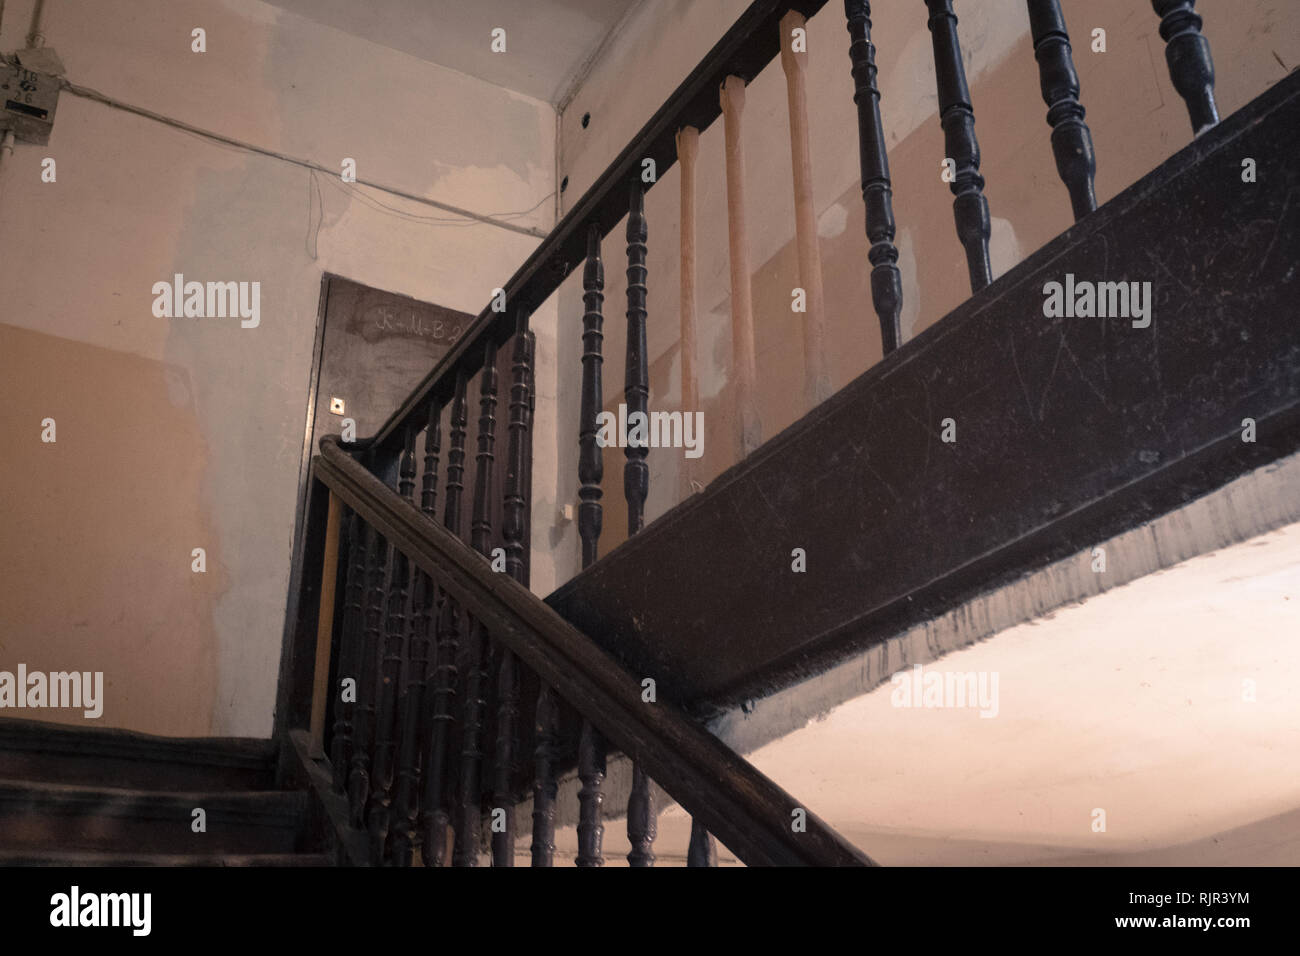 A staircase leading to a room in a building with new replacement spindles on the bannister Stock Photo